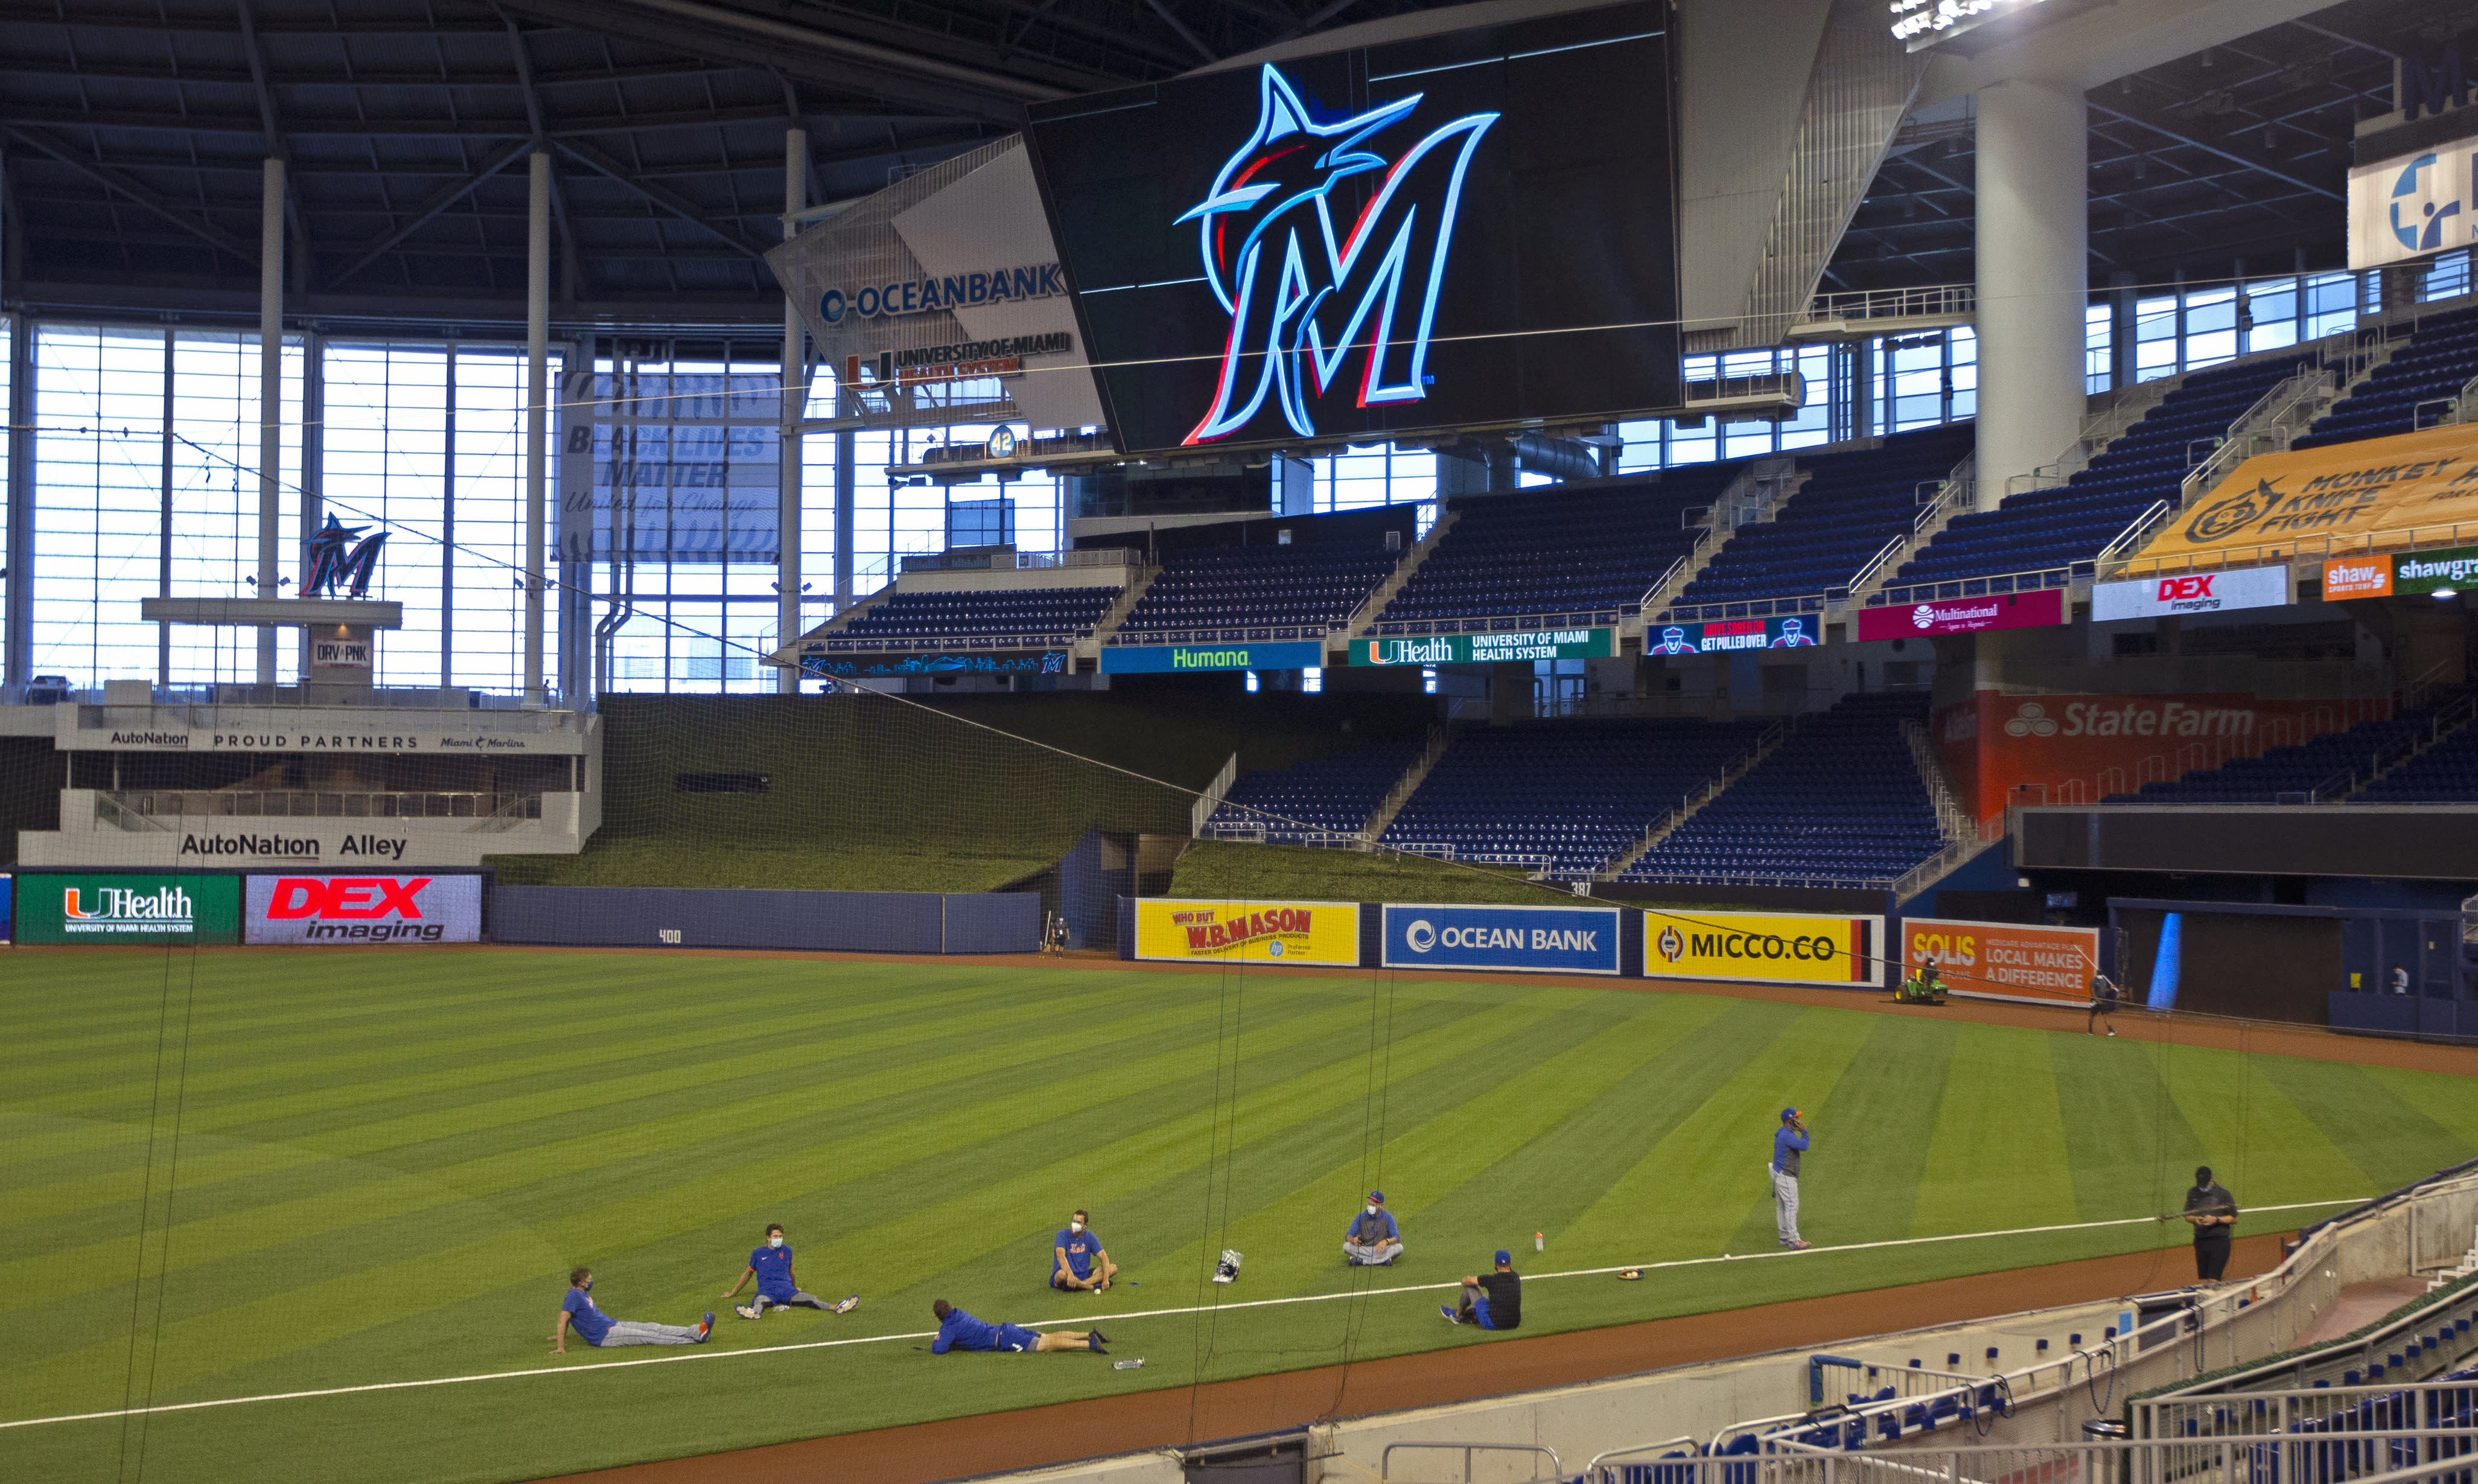 New York Mets players sit on the field before a baseball game against the Miami Marlins, Thursday, Aug. 20, 2020, in Miami. Major League Baseball says the Mets have received two positive tests for COVID-19 in their organization, prompting the postponement of two games against the Marlins. (David Santiago/Miami Herald via AP)